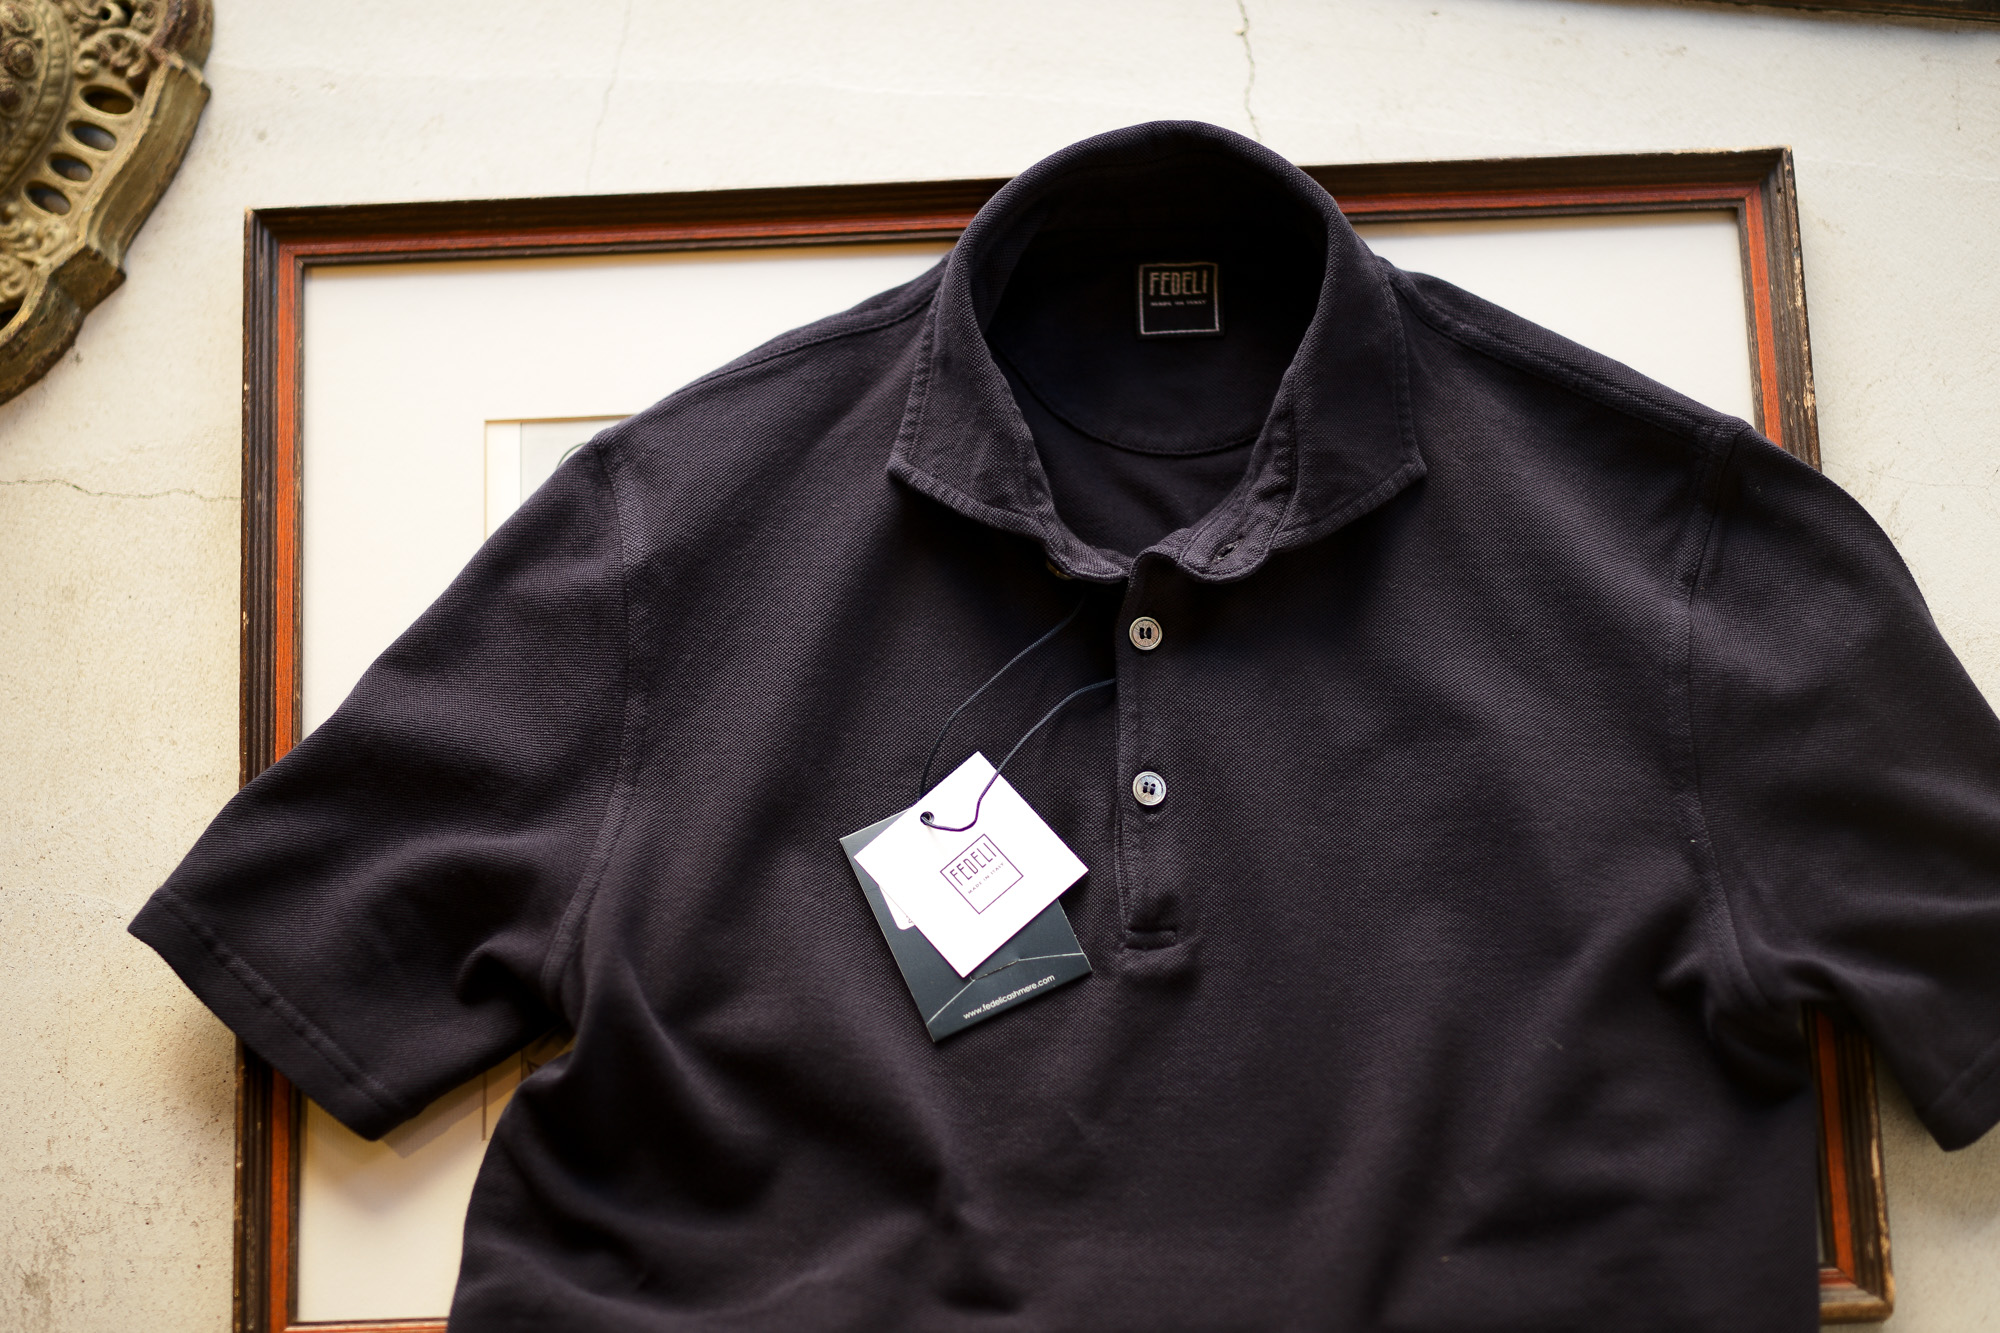 FEDELI(フェデーリ) Piquet Polo Shirt (ピケ ポロシャツ) カノコ ポロシャツ NAVY (ネイビー・626) made in italy (イタリア製)2020 春夏 【ご予約受付中】愛知 名古屋 altoediritto アルトエデリット ポロ